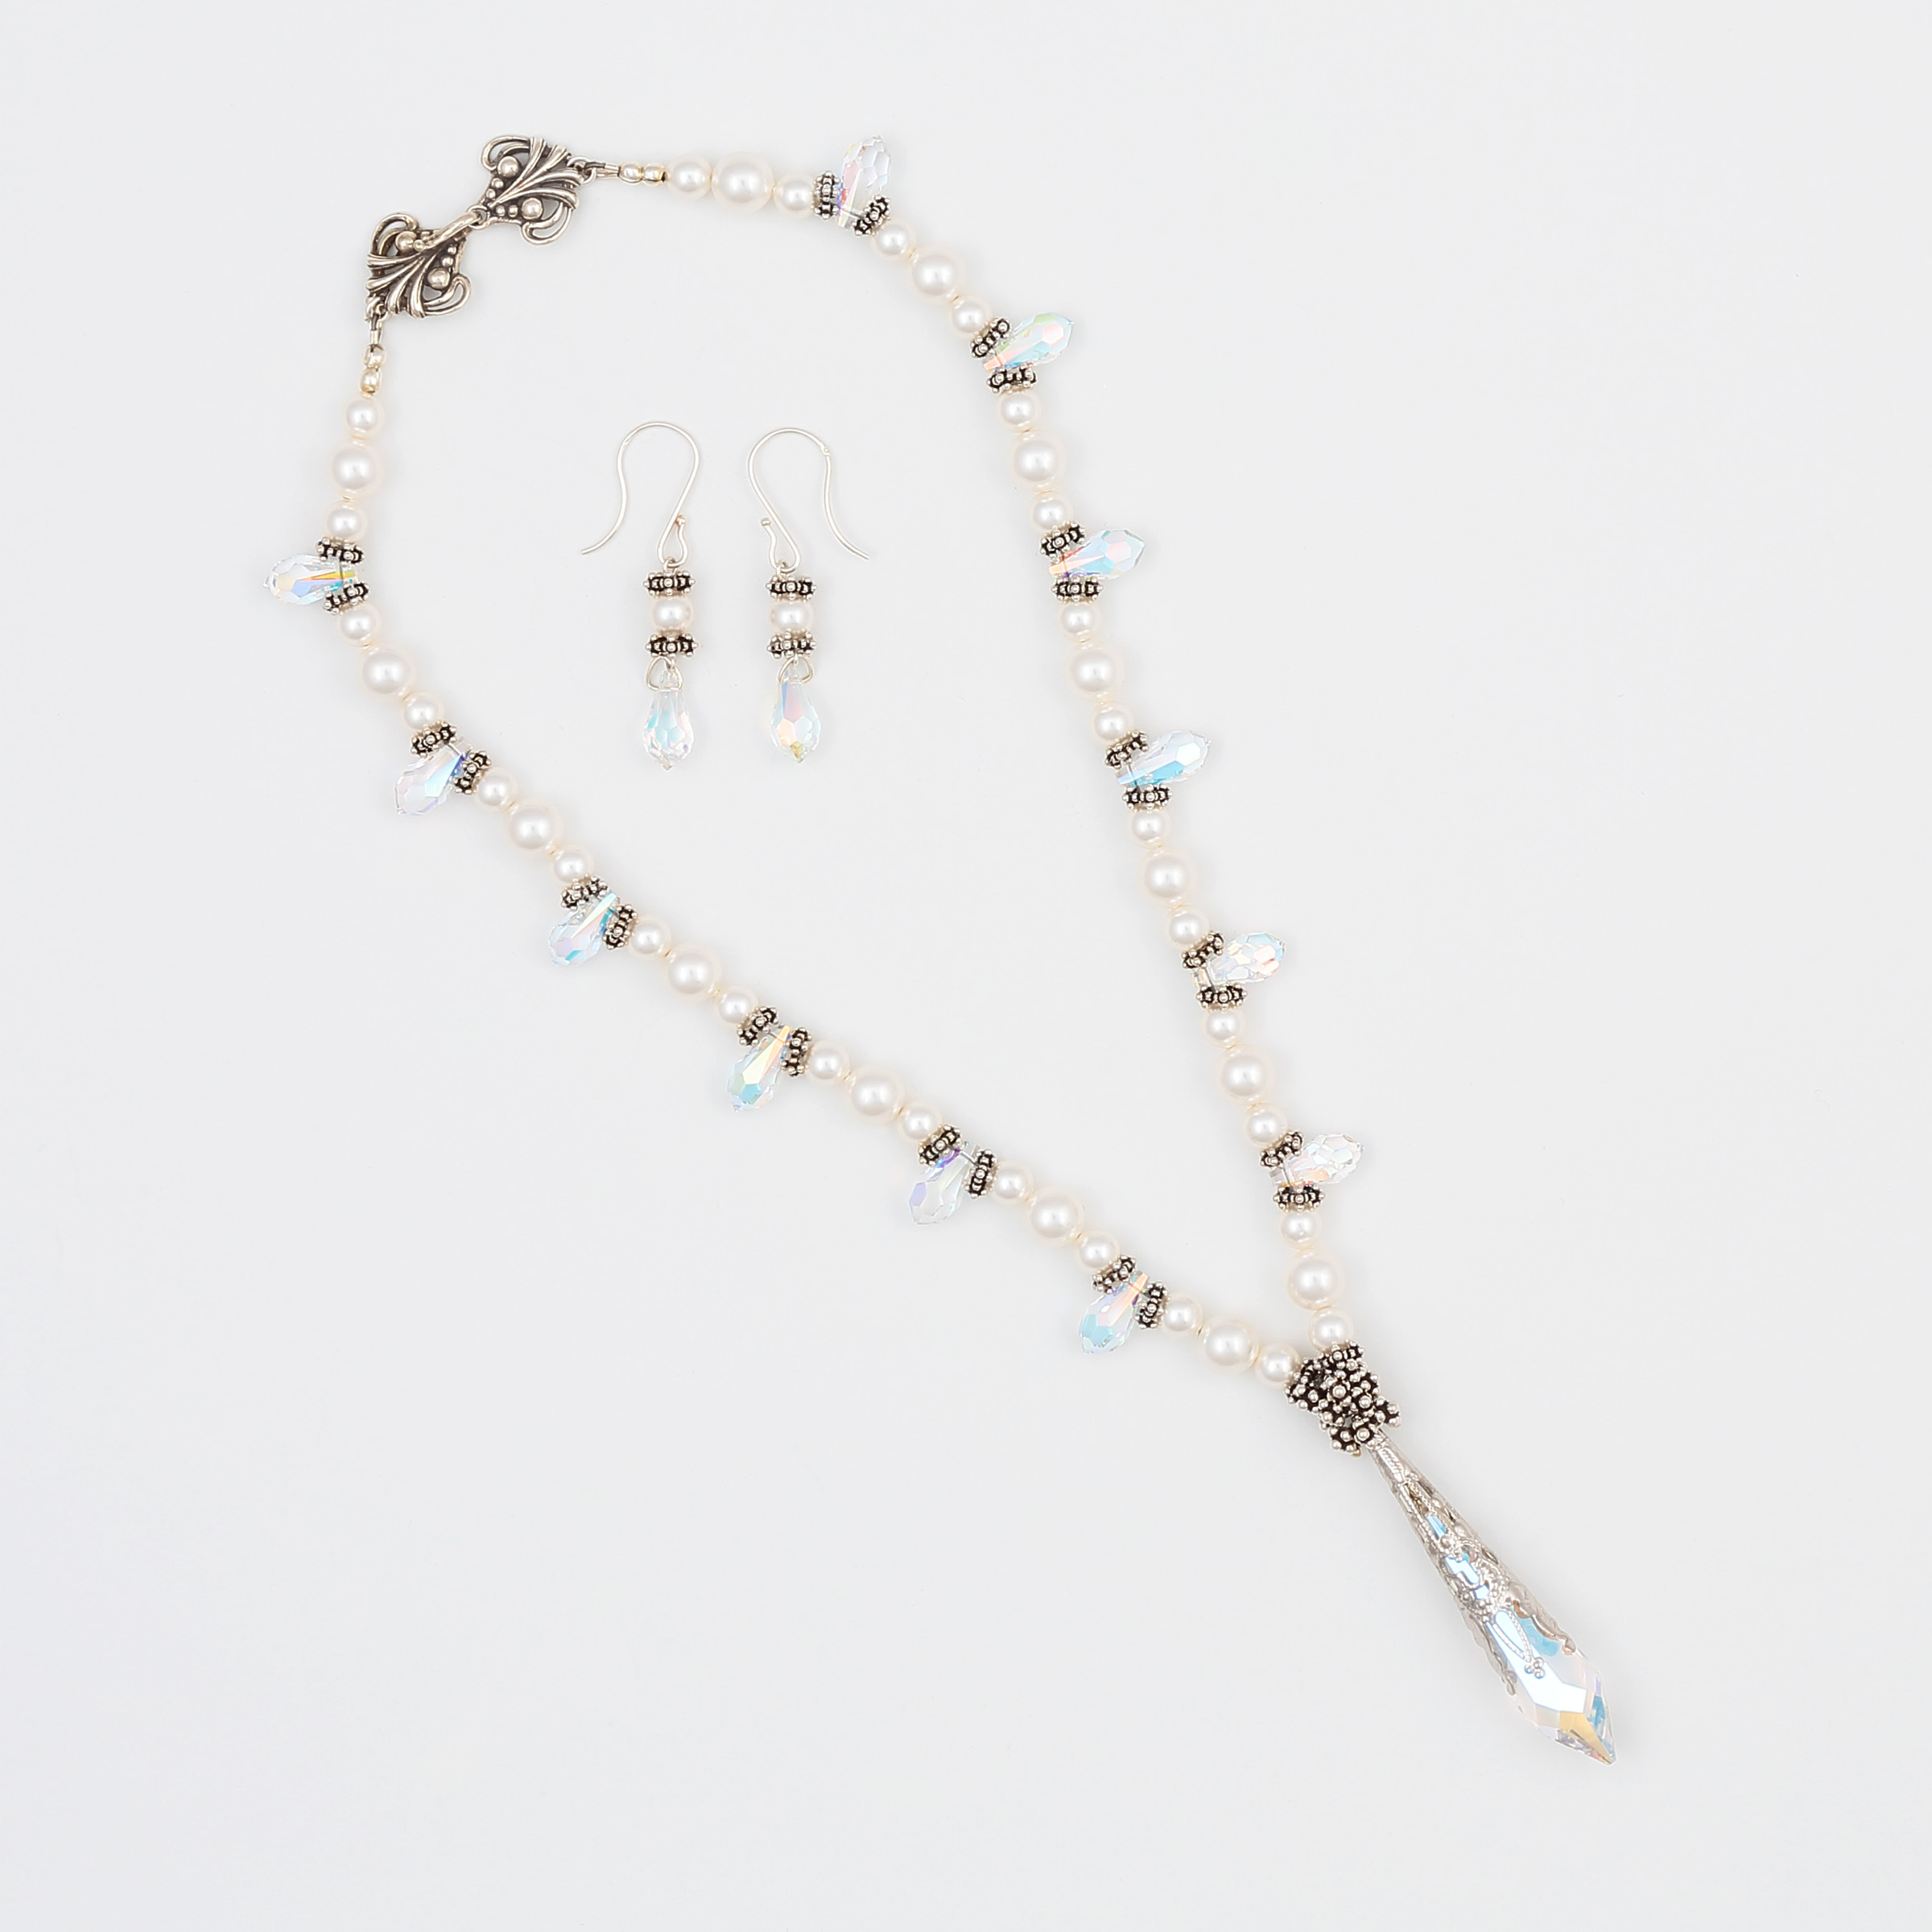 JOYFUL NECKLACE & EARRING SET- Diamond like Swarovski crystals and white pearls with beautiful filigree crystal pendant and sterling silver